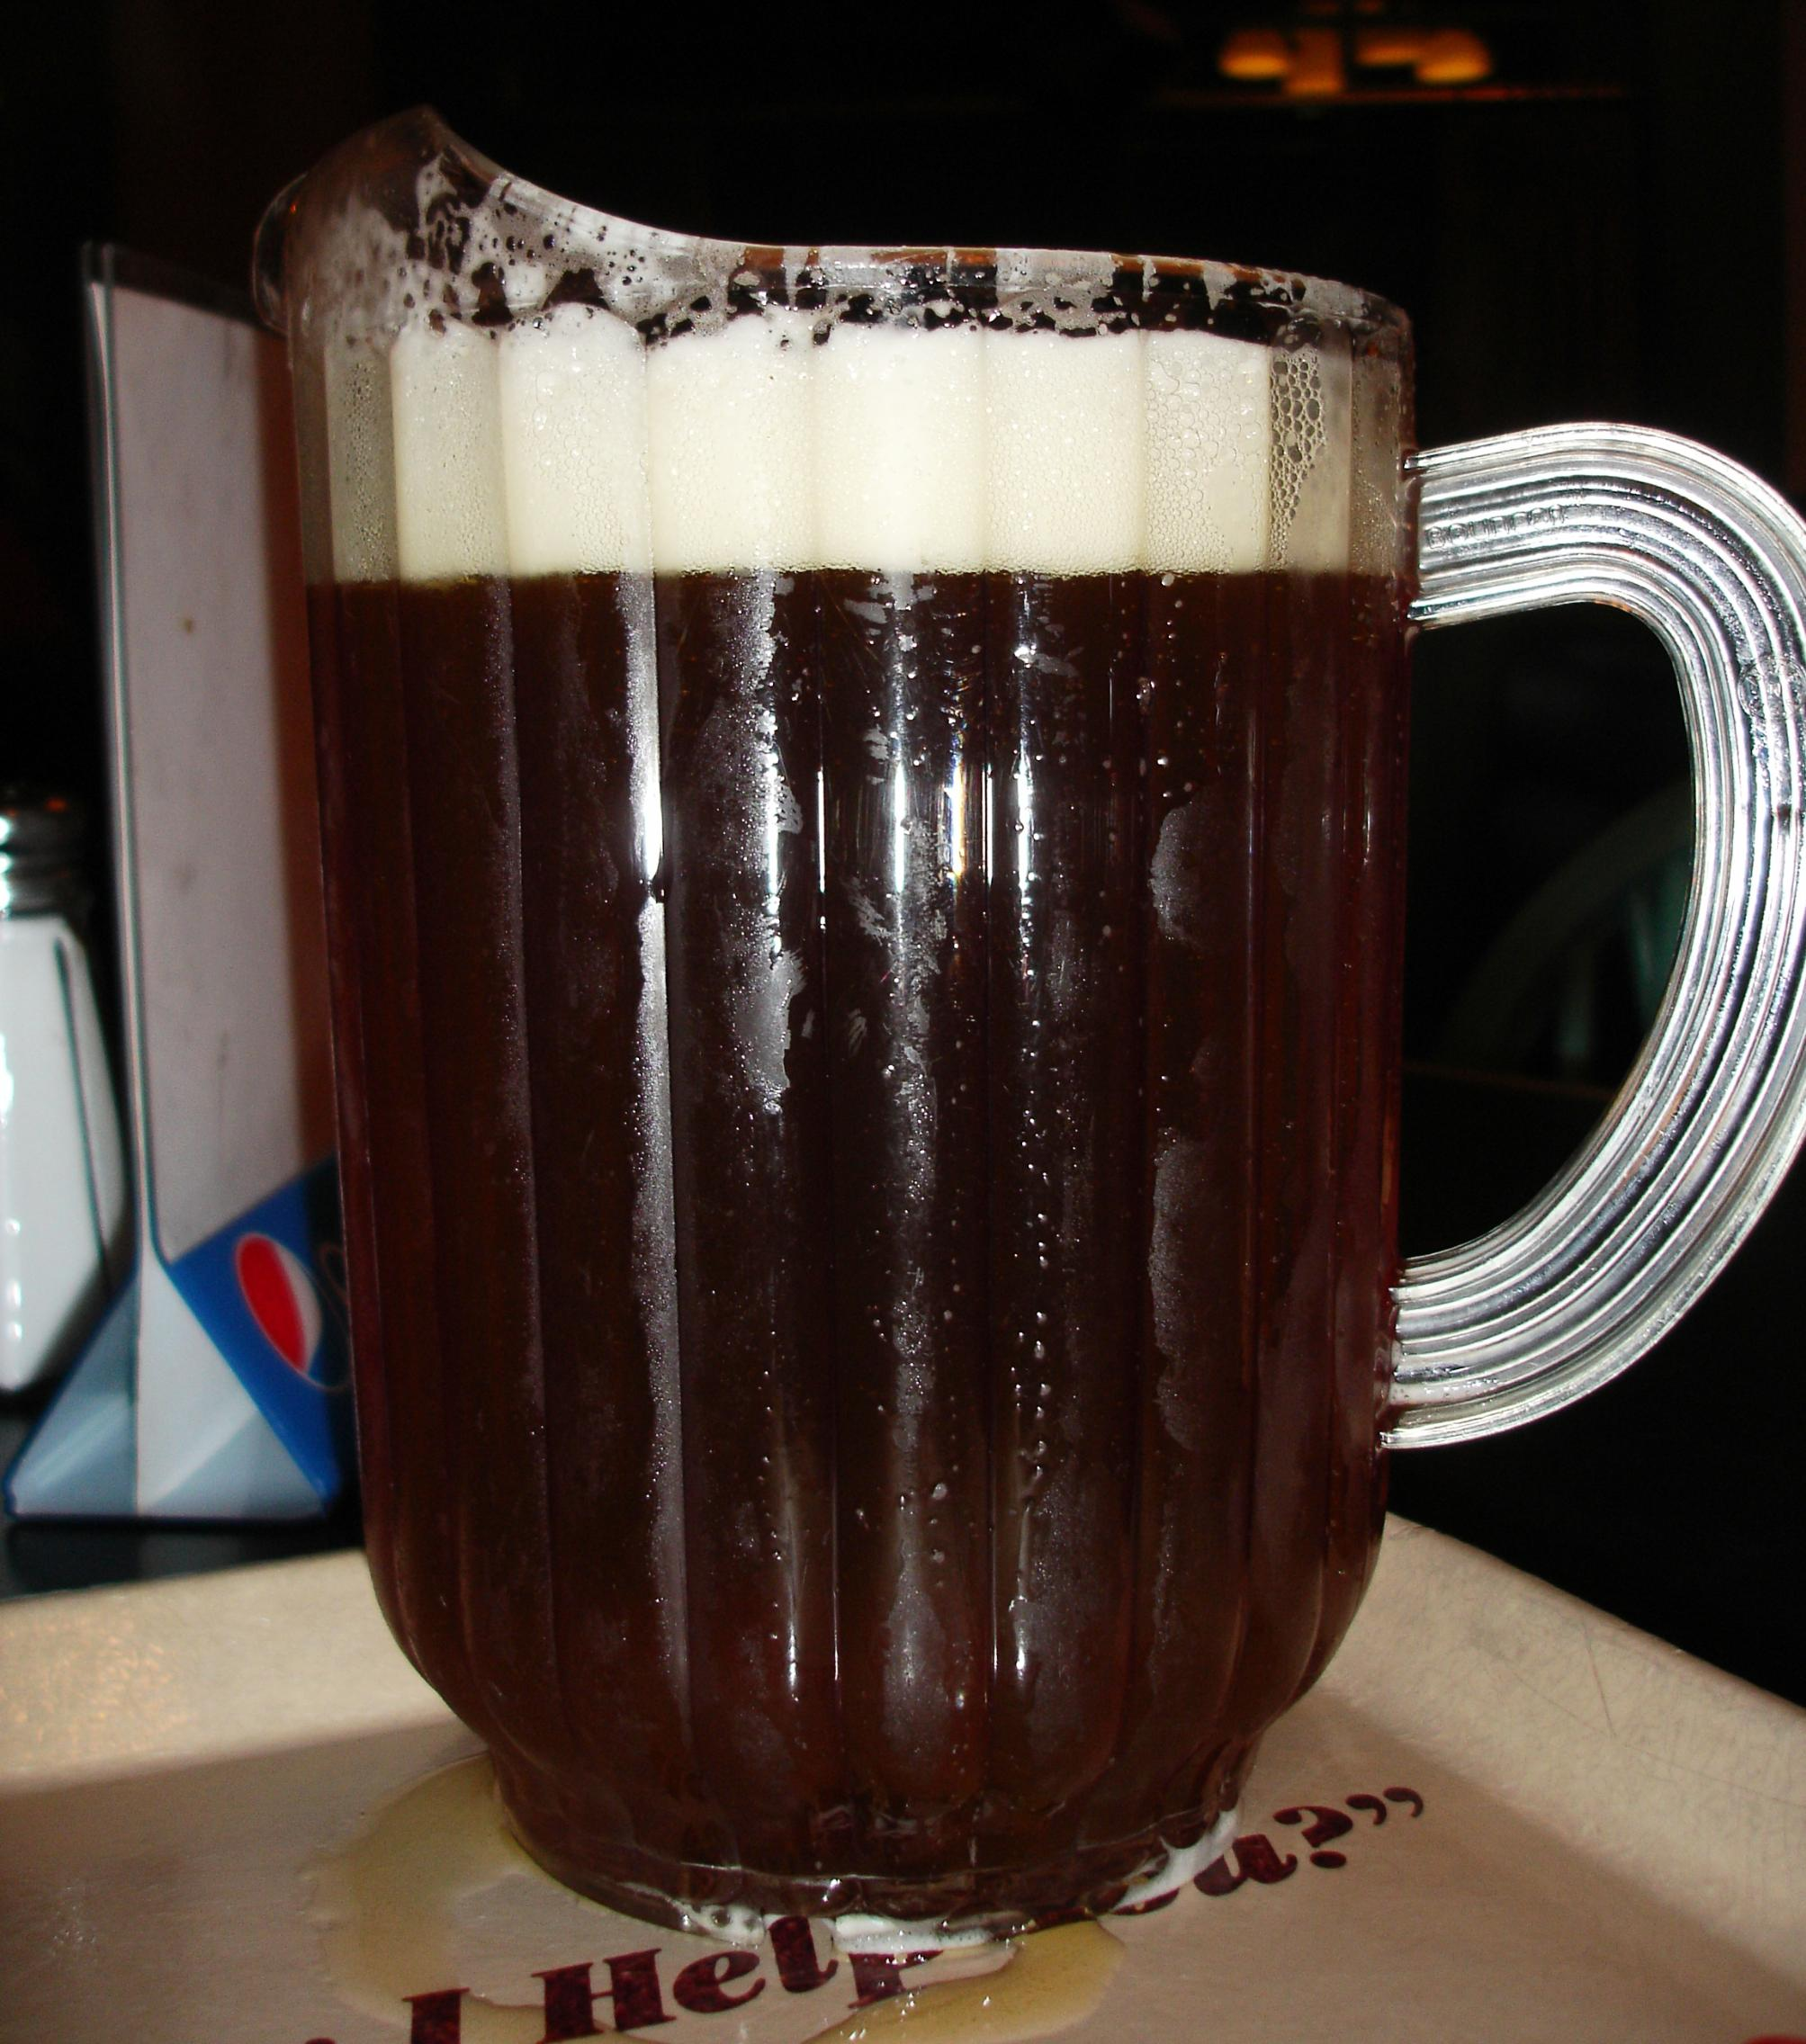 A big pitcher of local, and excellent, Boulevard ale